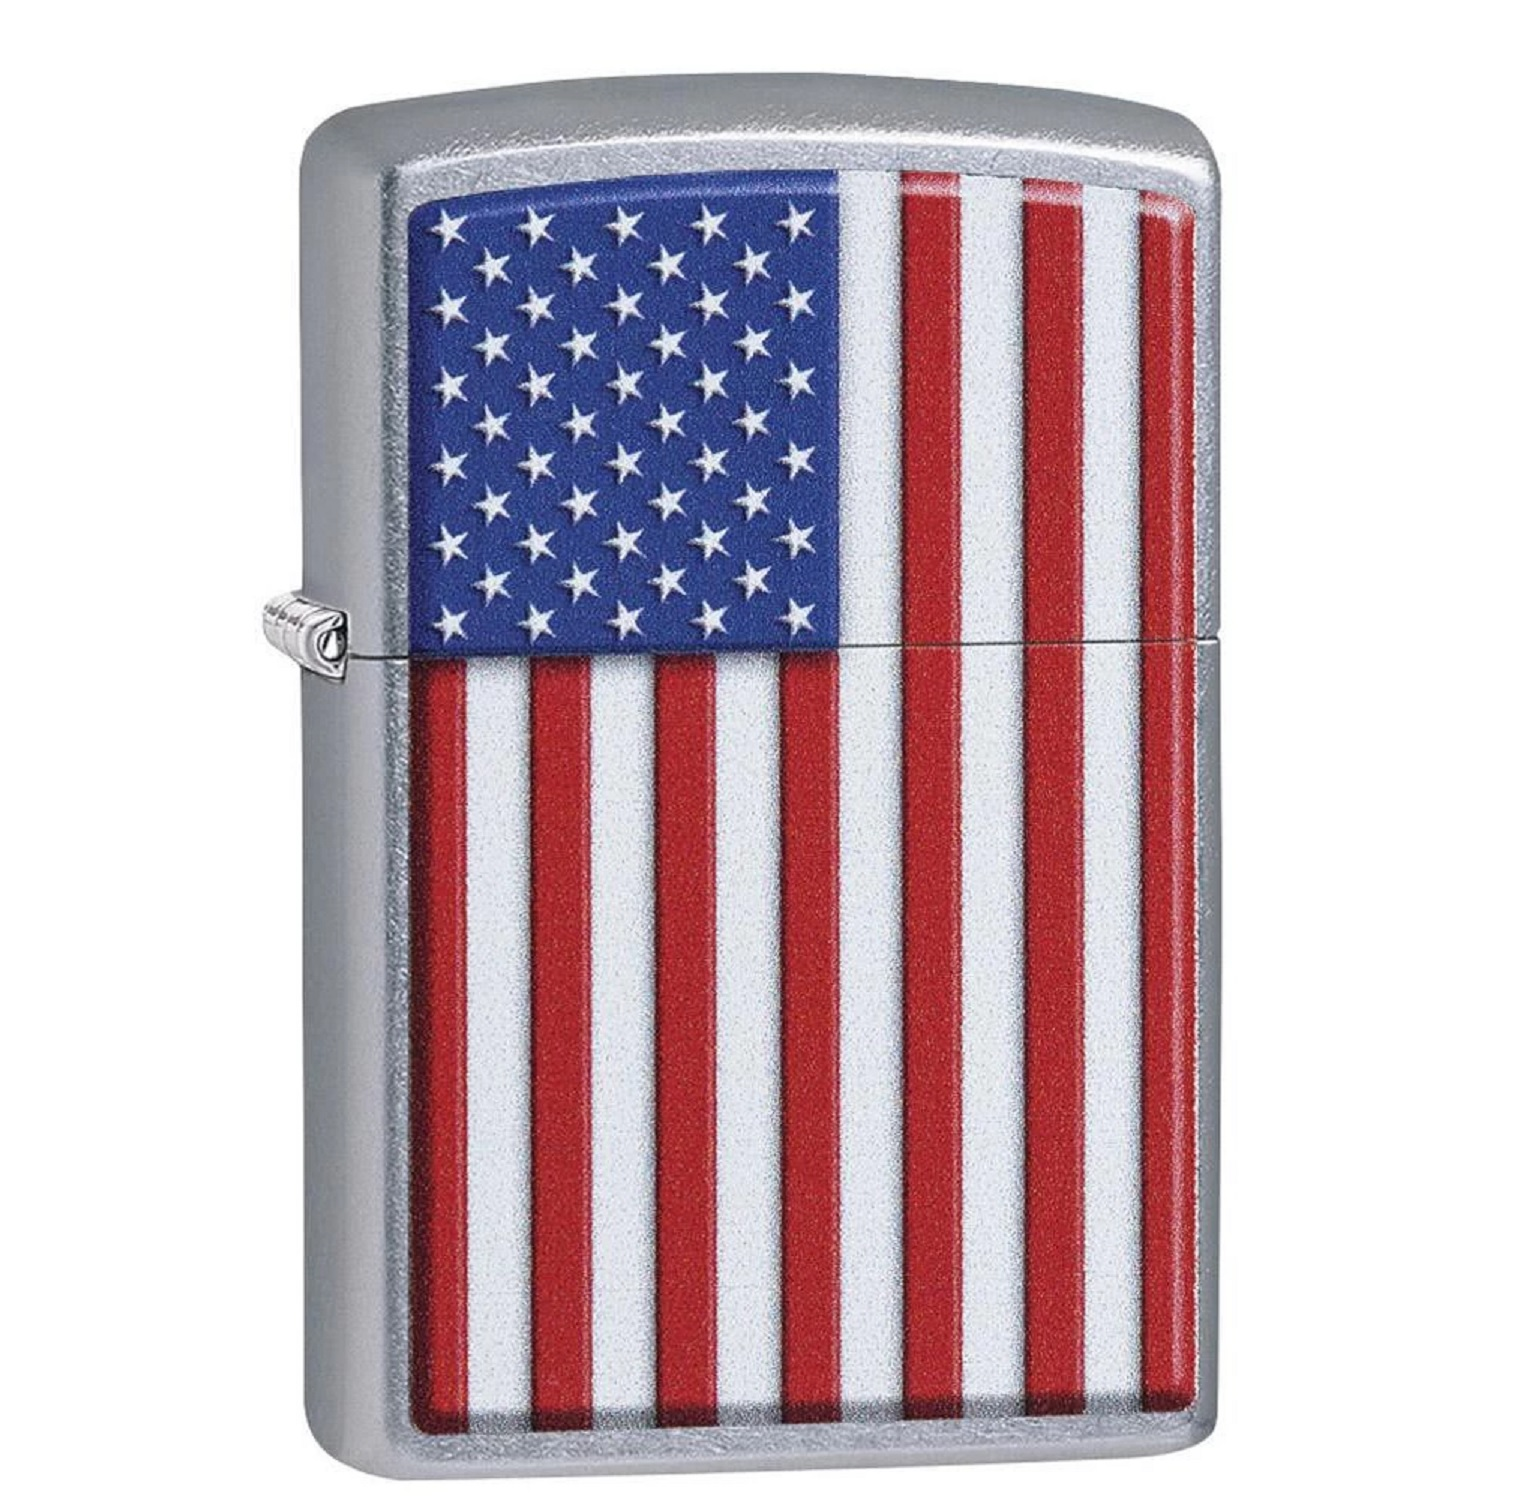 Zippo Street Chrome Patriotic Lighter